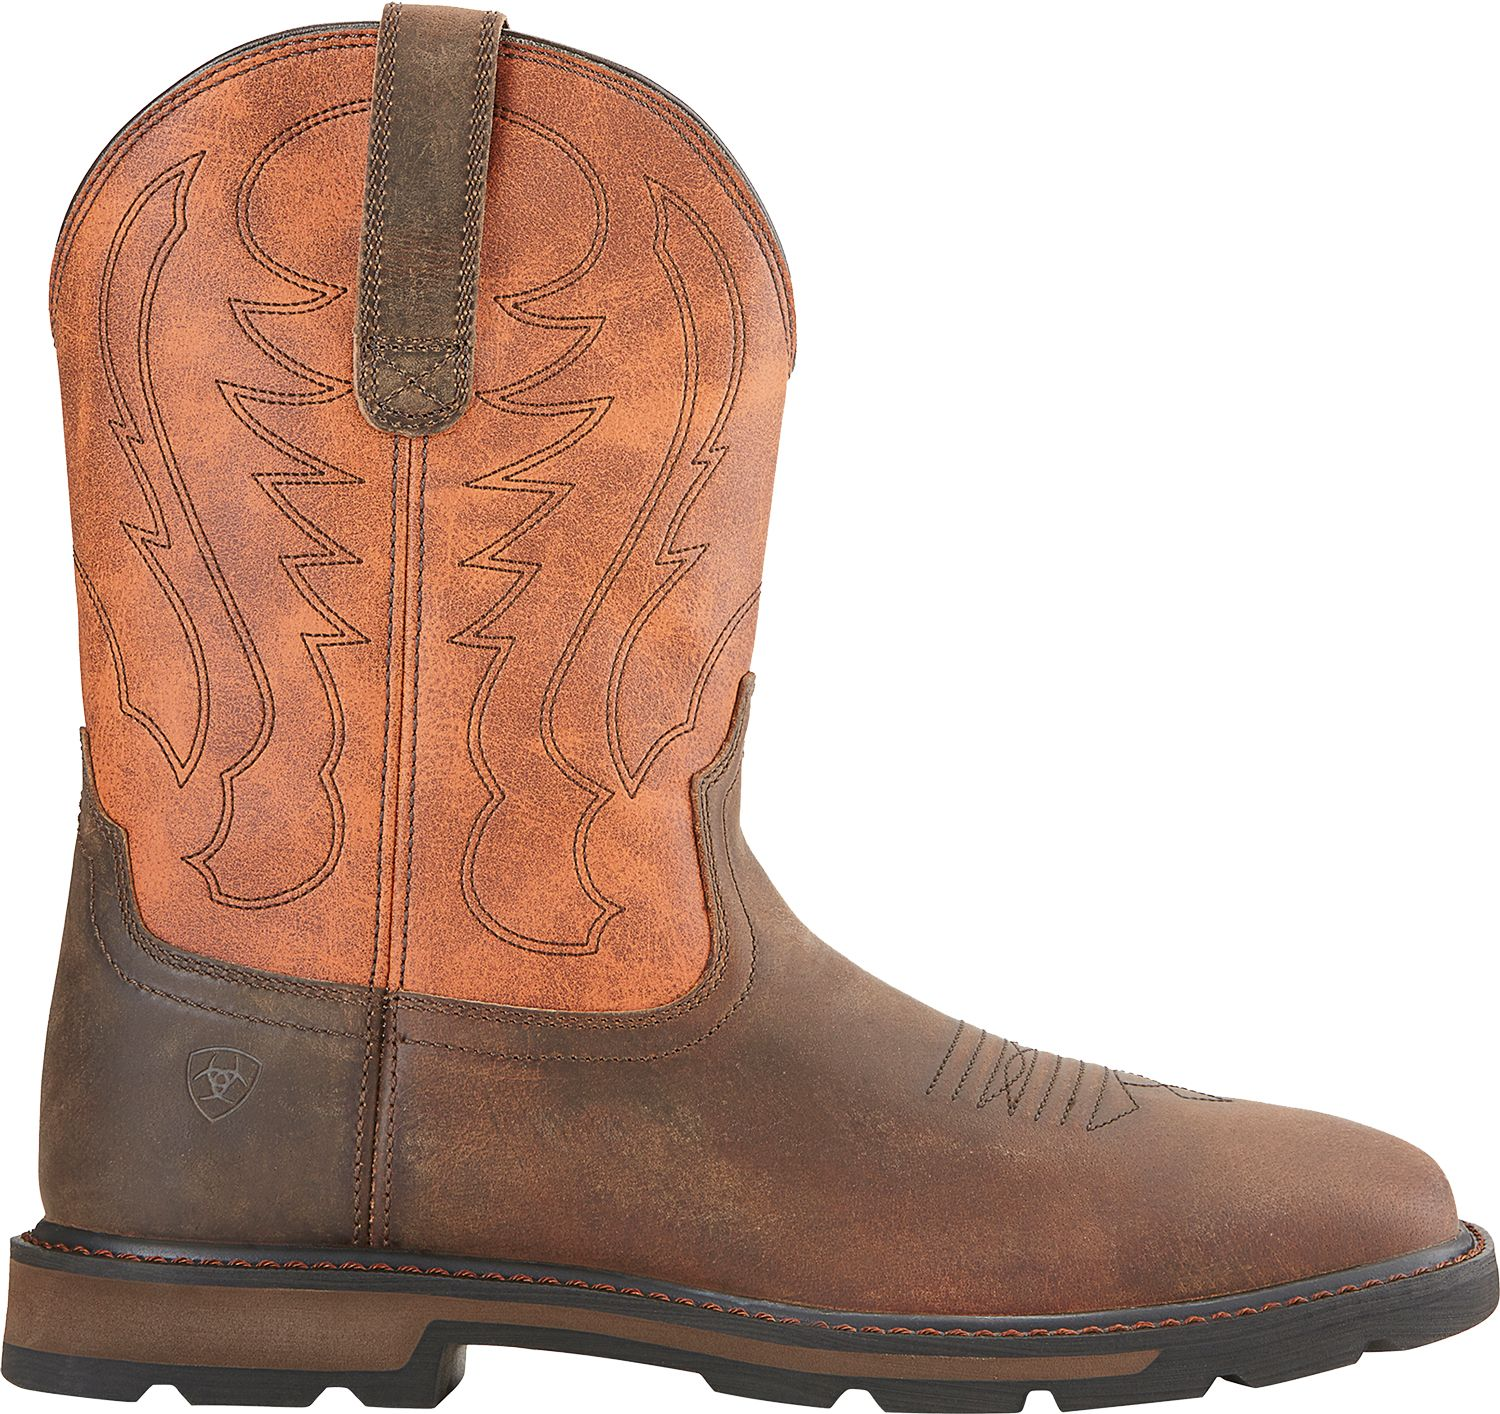 Ariat Boots | DICK'S Sporting Goods